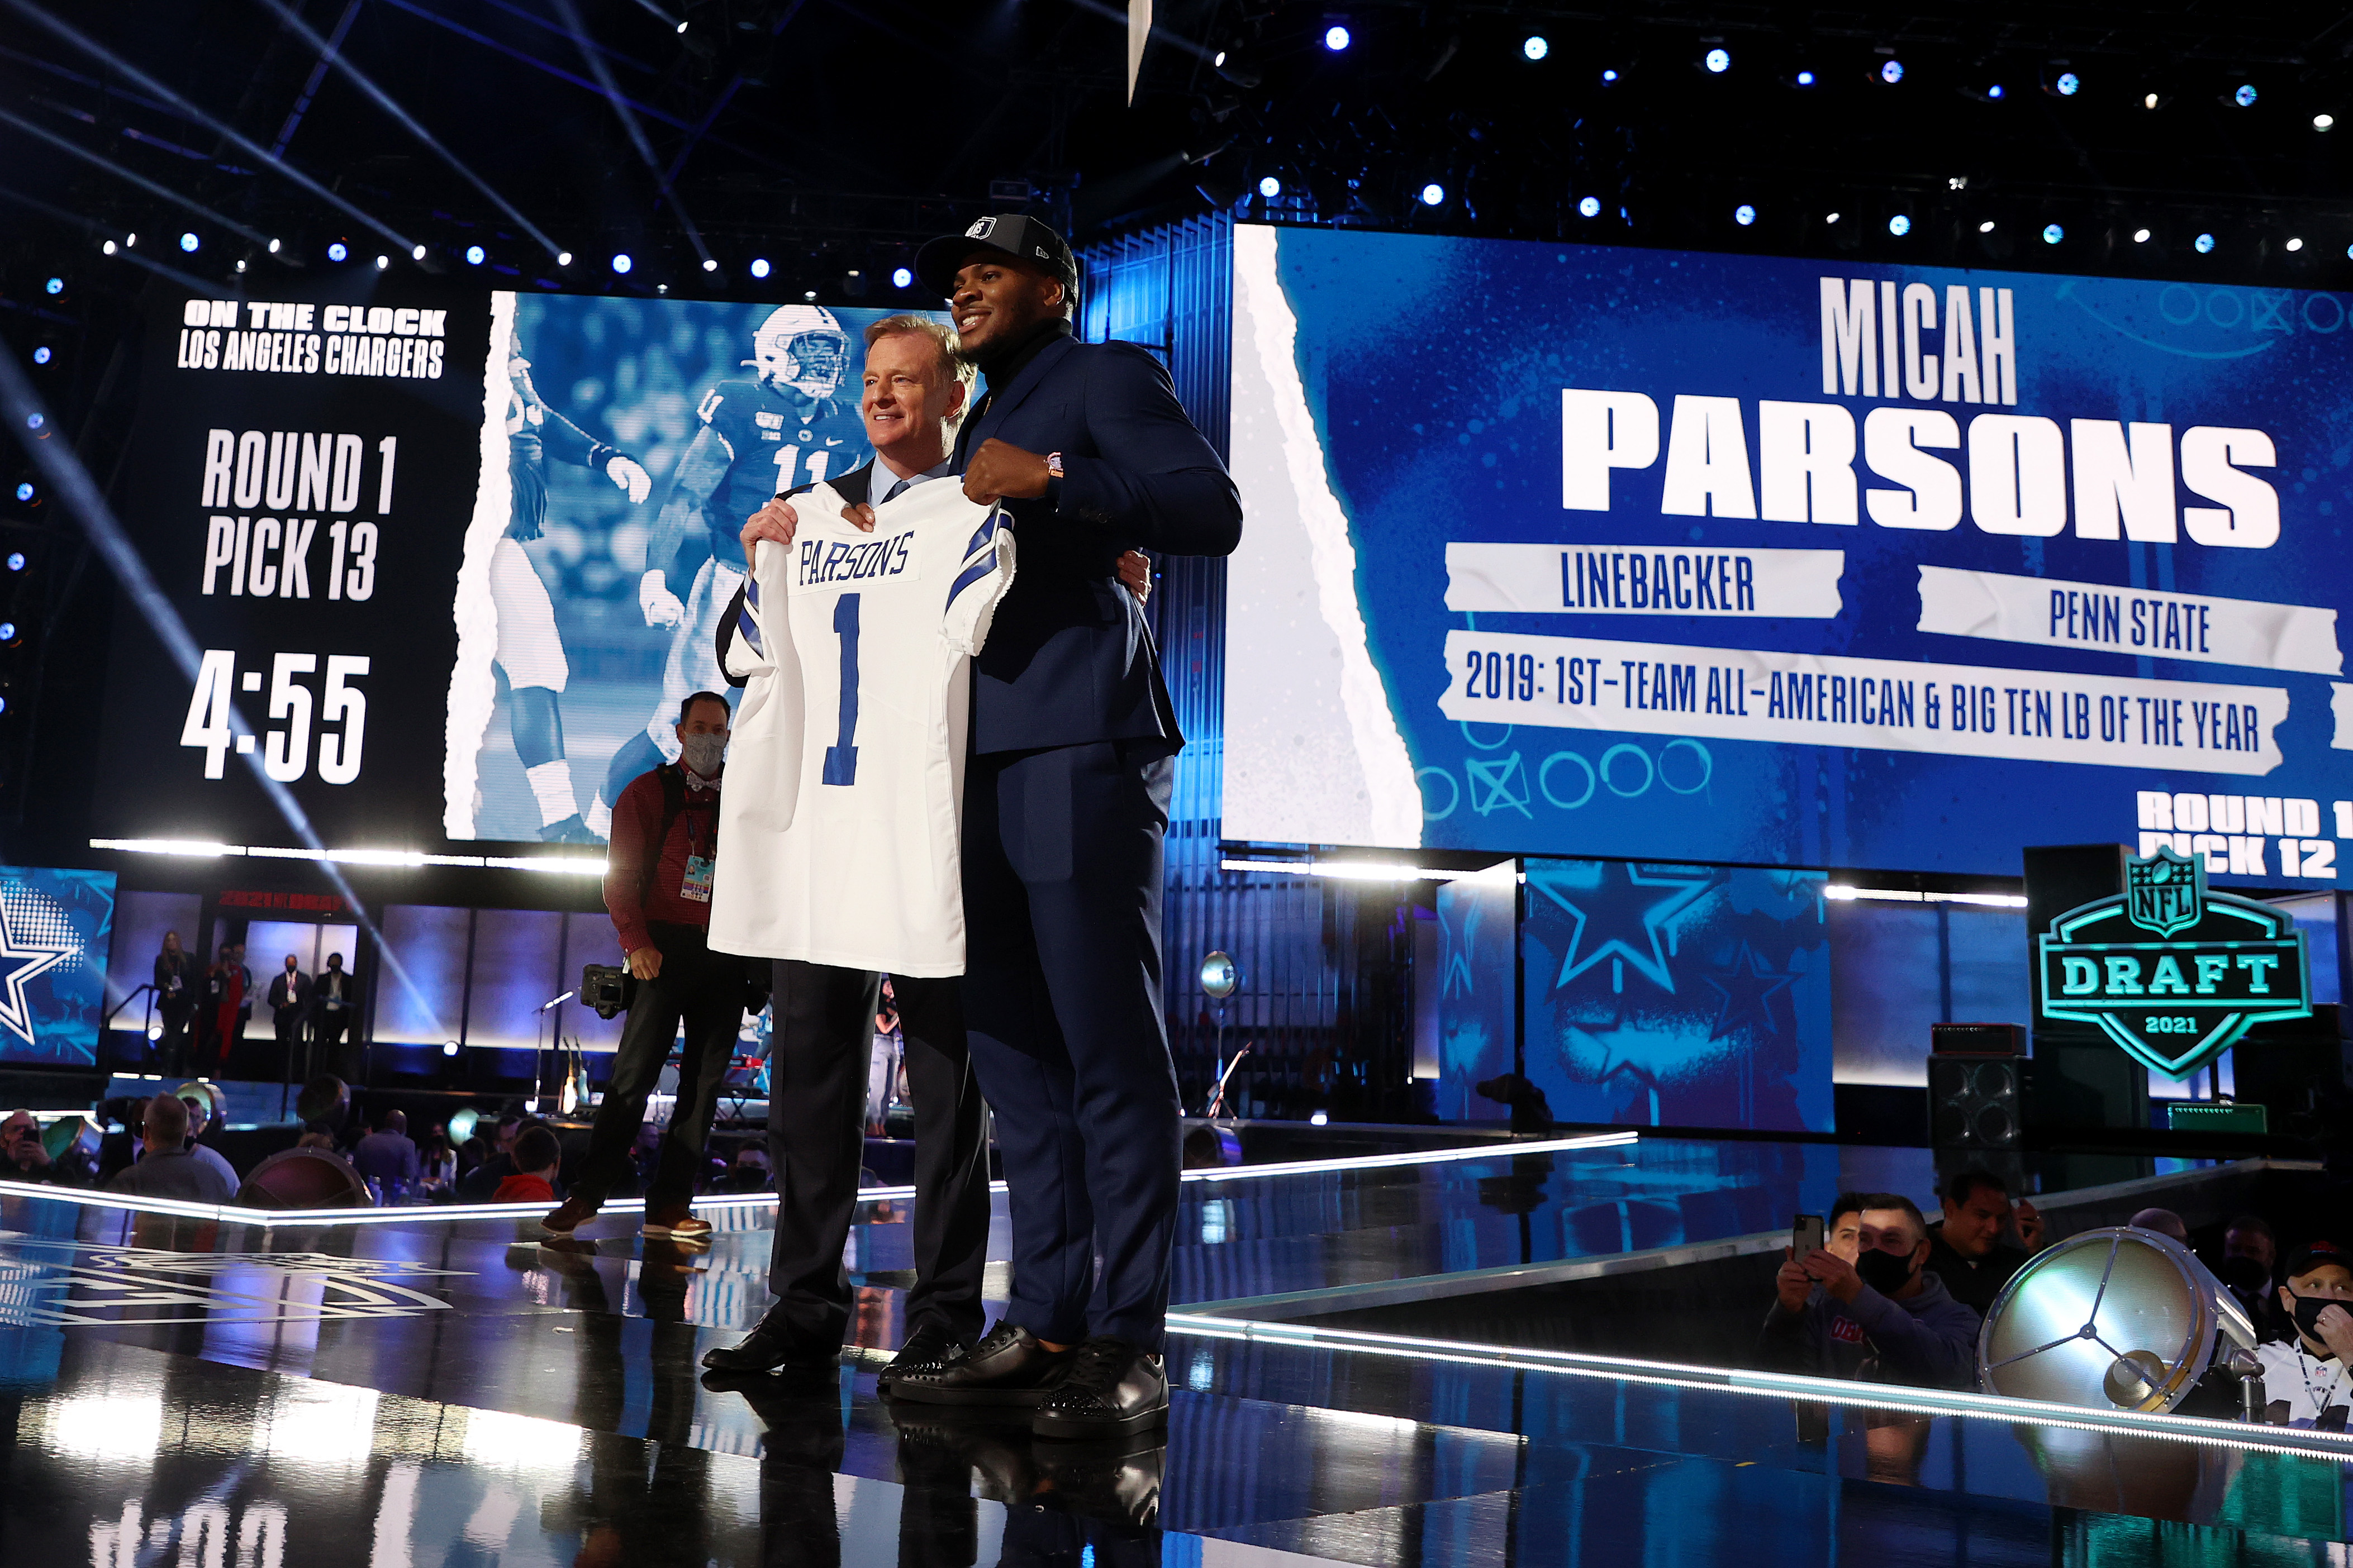 Dallas Cowboy draft pick Micah Parsons poses with NFL Commissioner Roger Goodell onstage during round one of the 2021 NFL Draft at the Great Lakes Science Center on April 29, 2021 in Cleveland, Ohio.